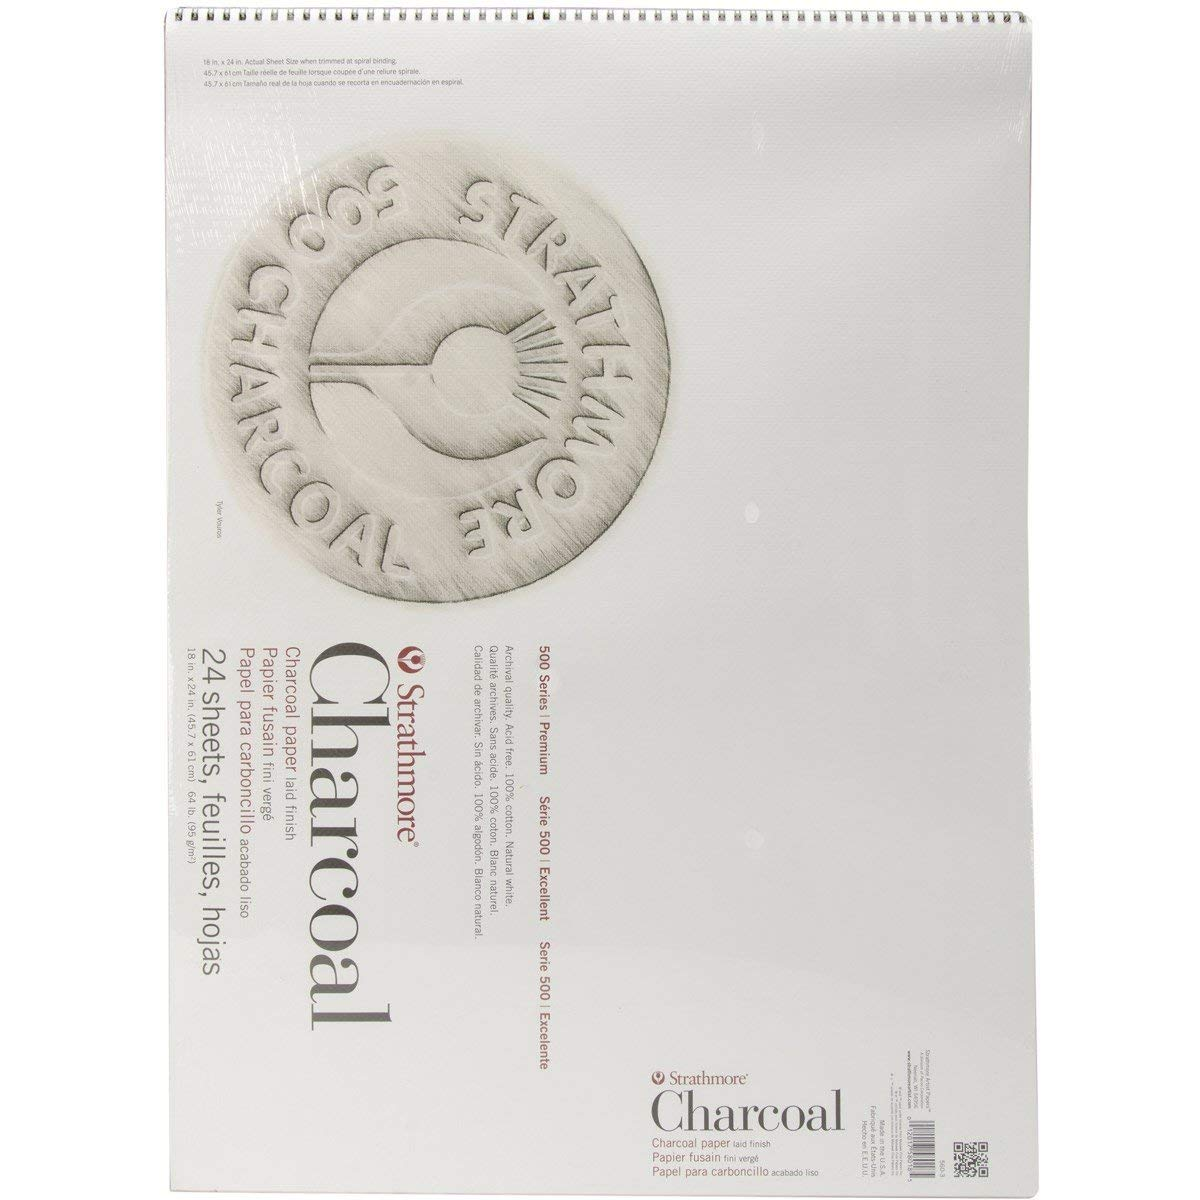 Strathmore Paper 500 Series Charcoal Pad 18''x24'' White 24 Sheets